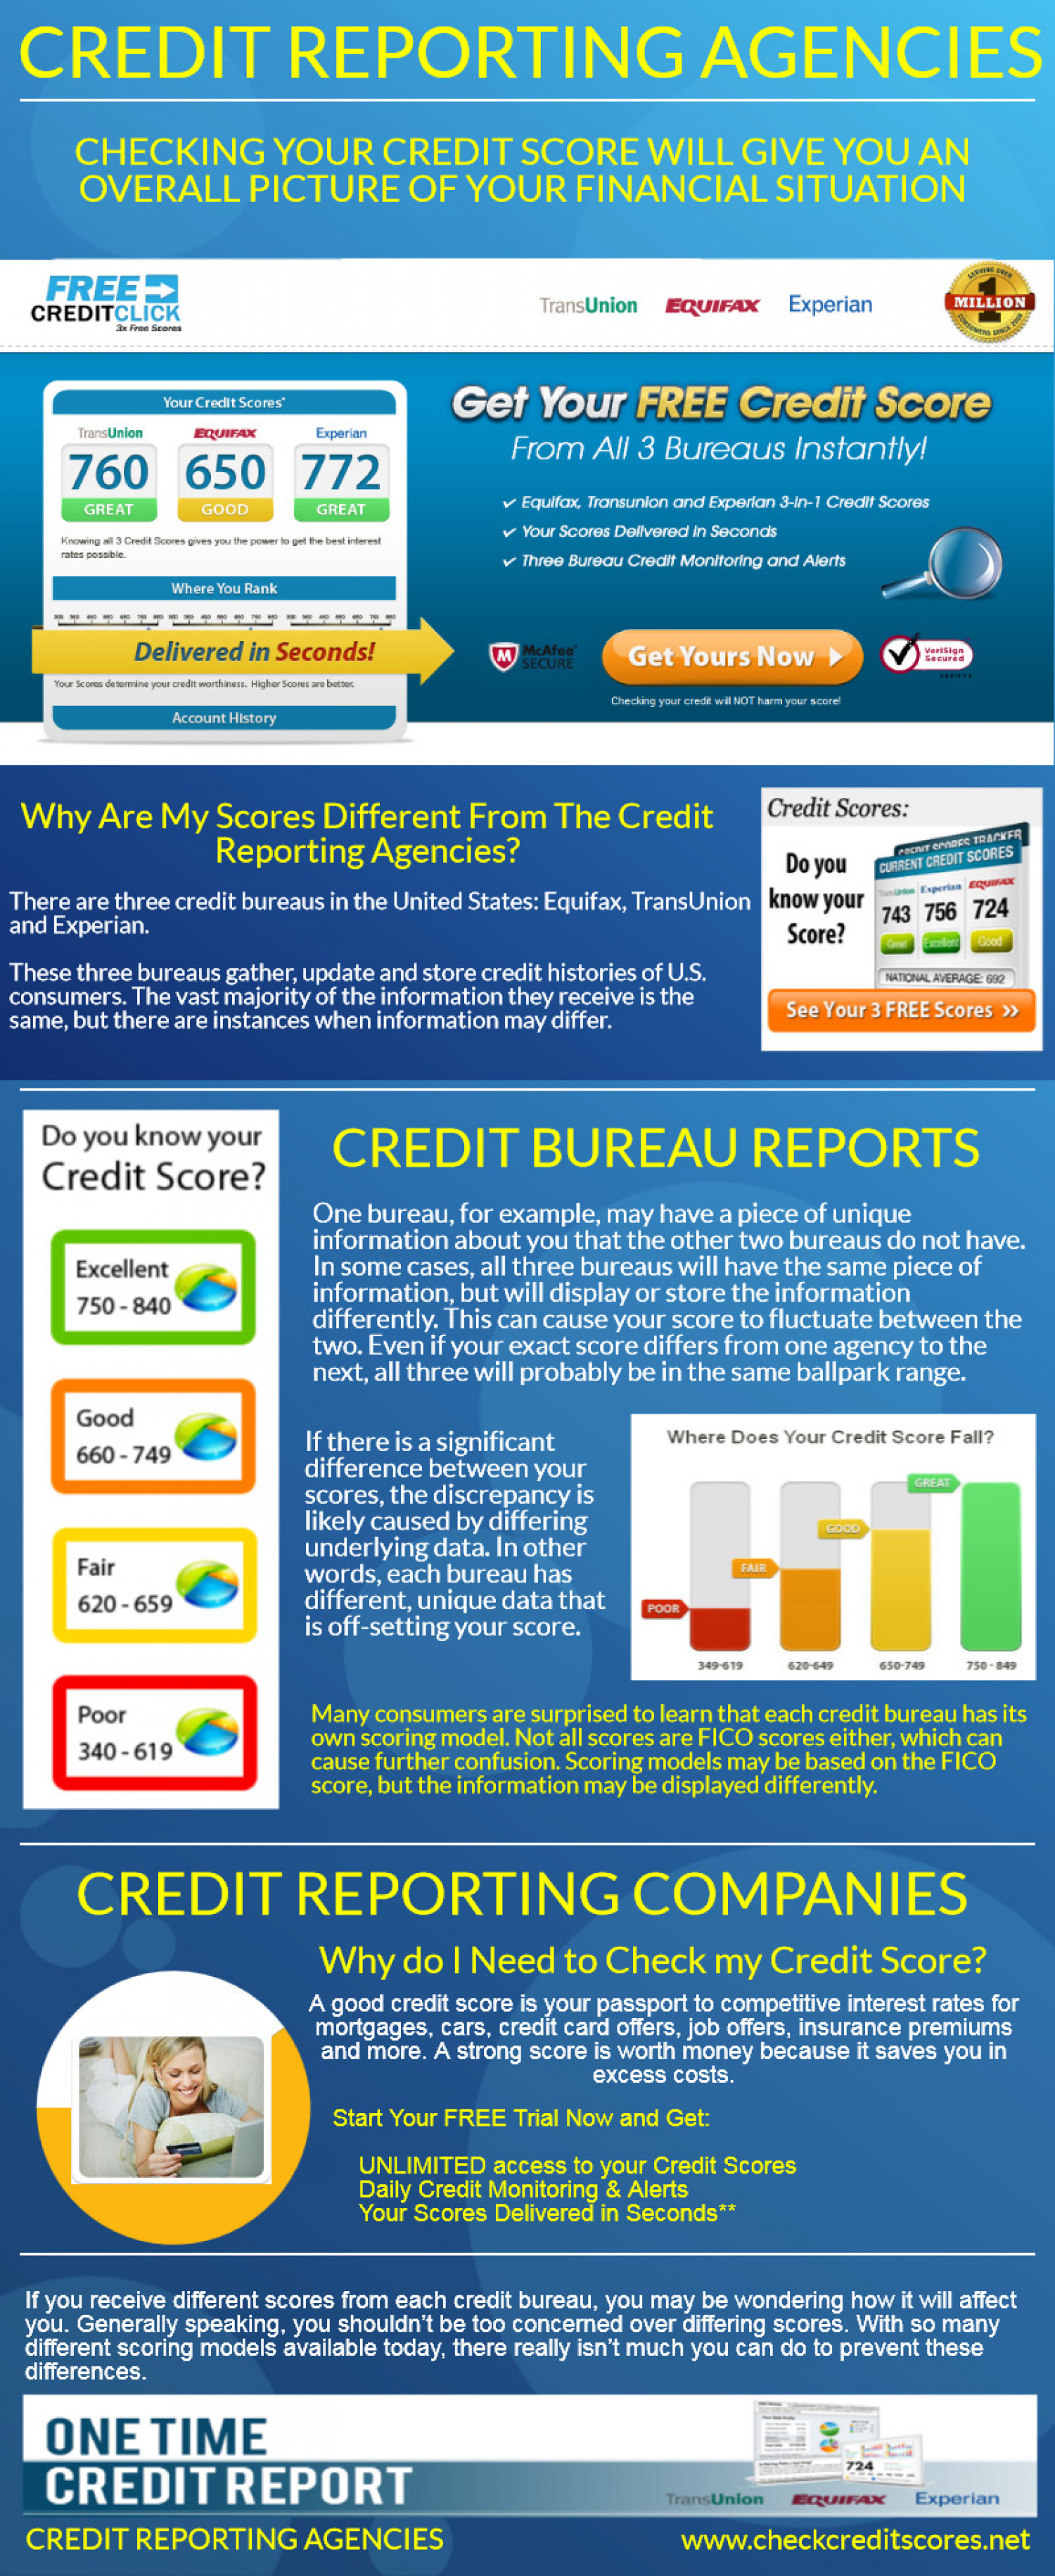 Credit Reporting Agencies Infographic